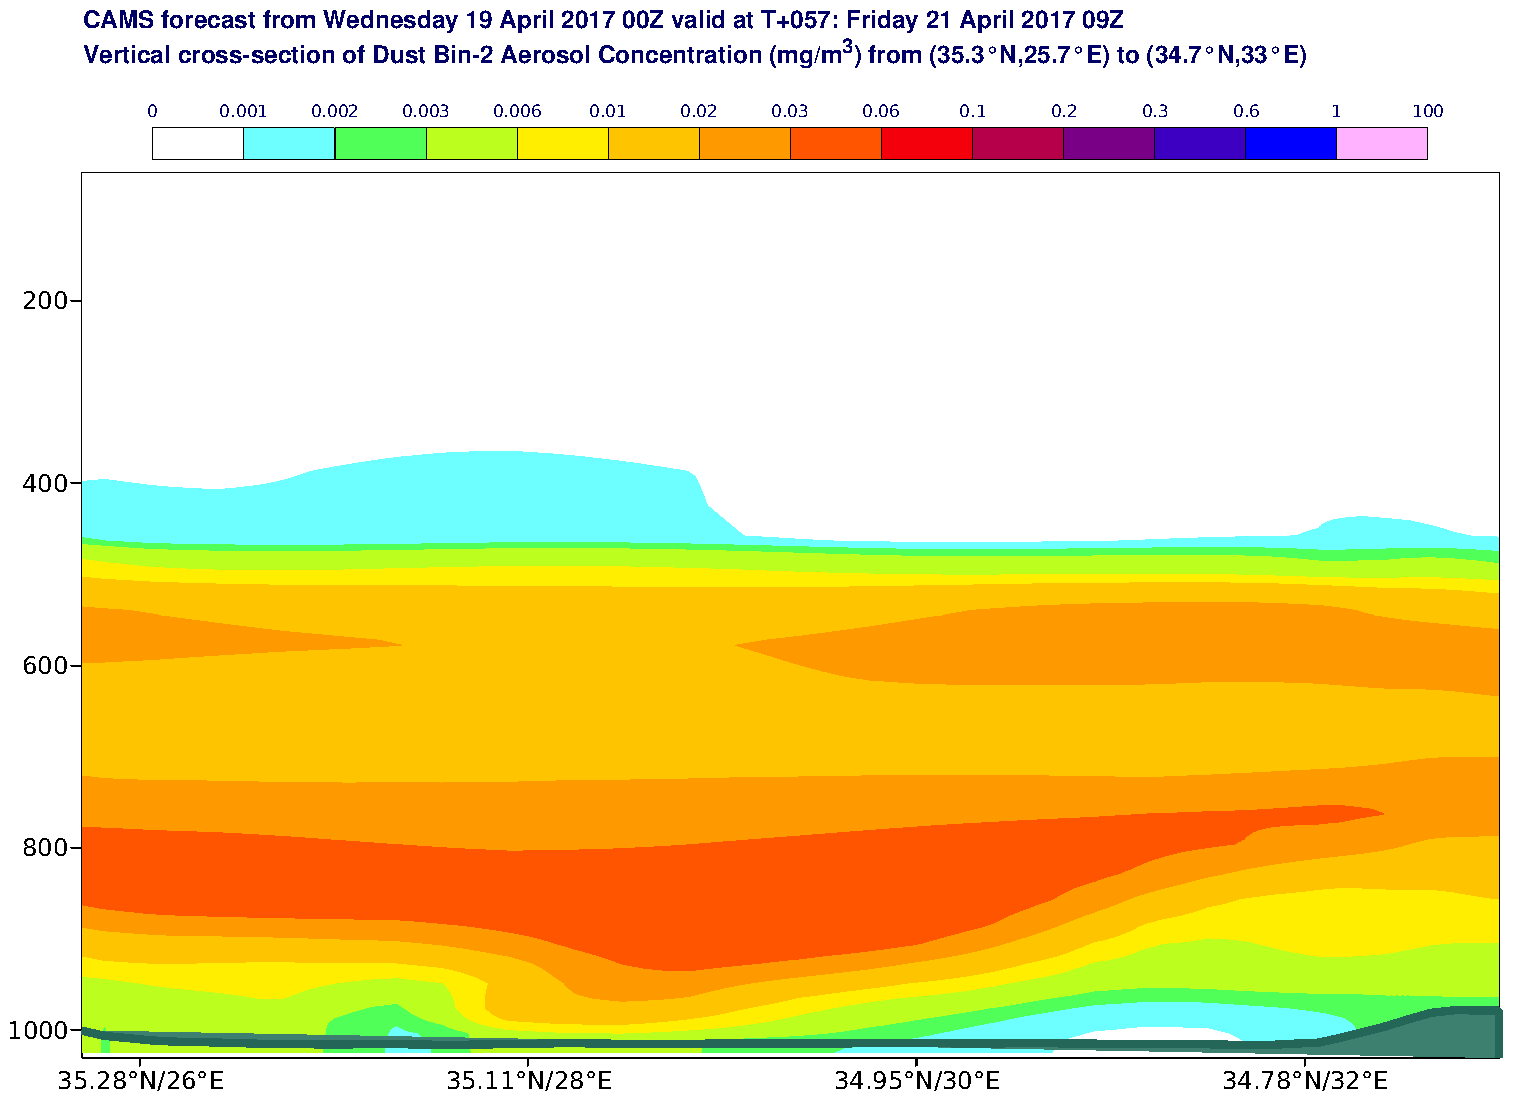 Vertical cross-section of Dust Bin-2 Aerosol Concentration (mg/m3) valid at T57 - 2017-04-21 09:00